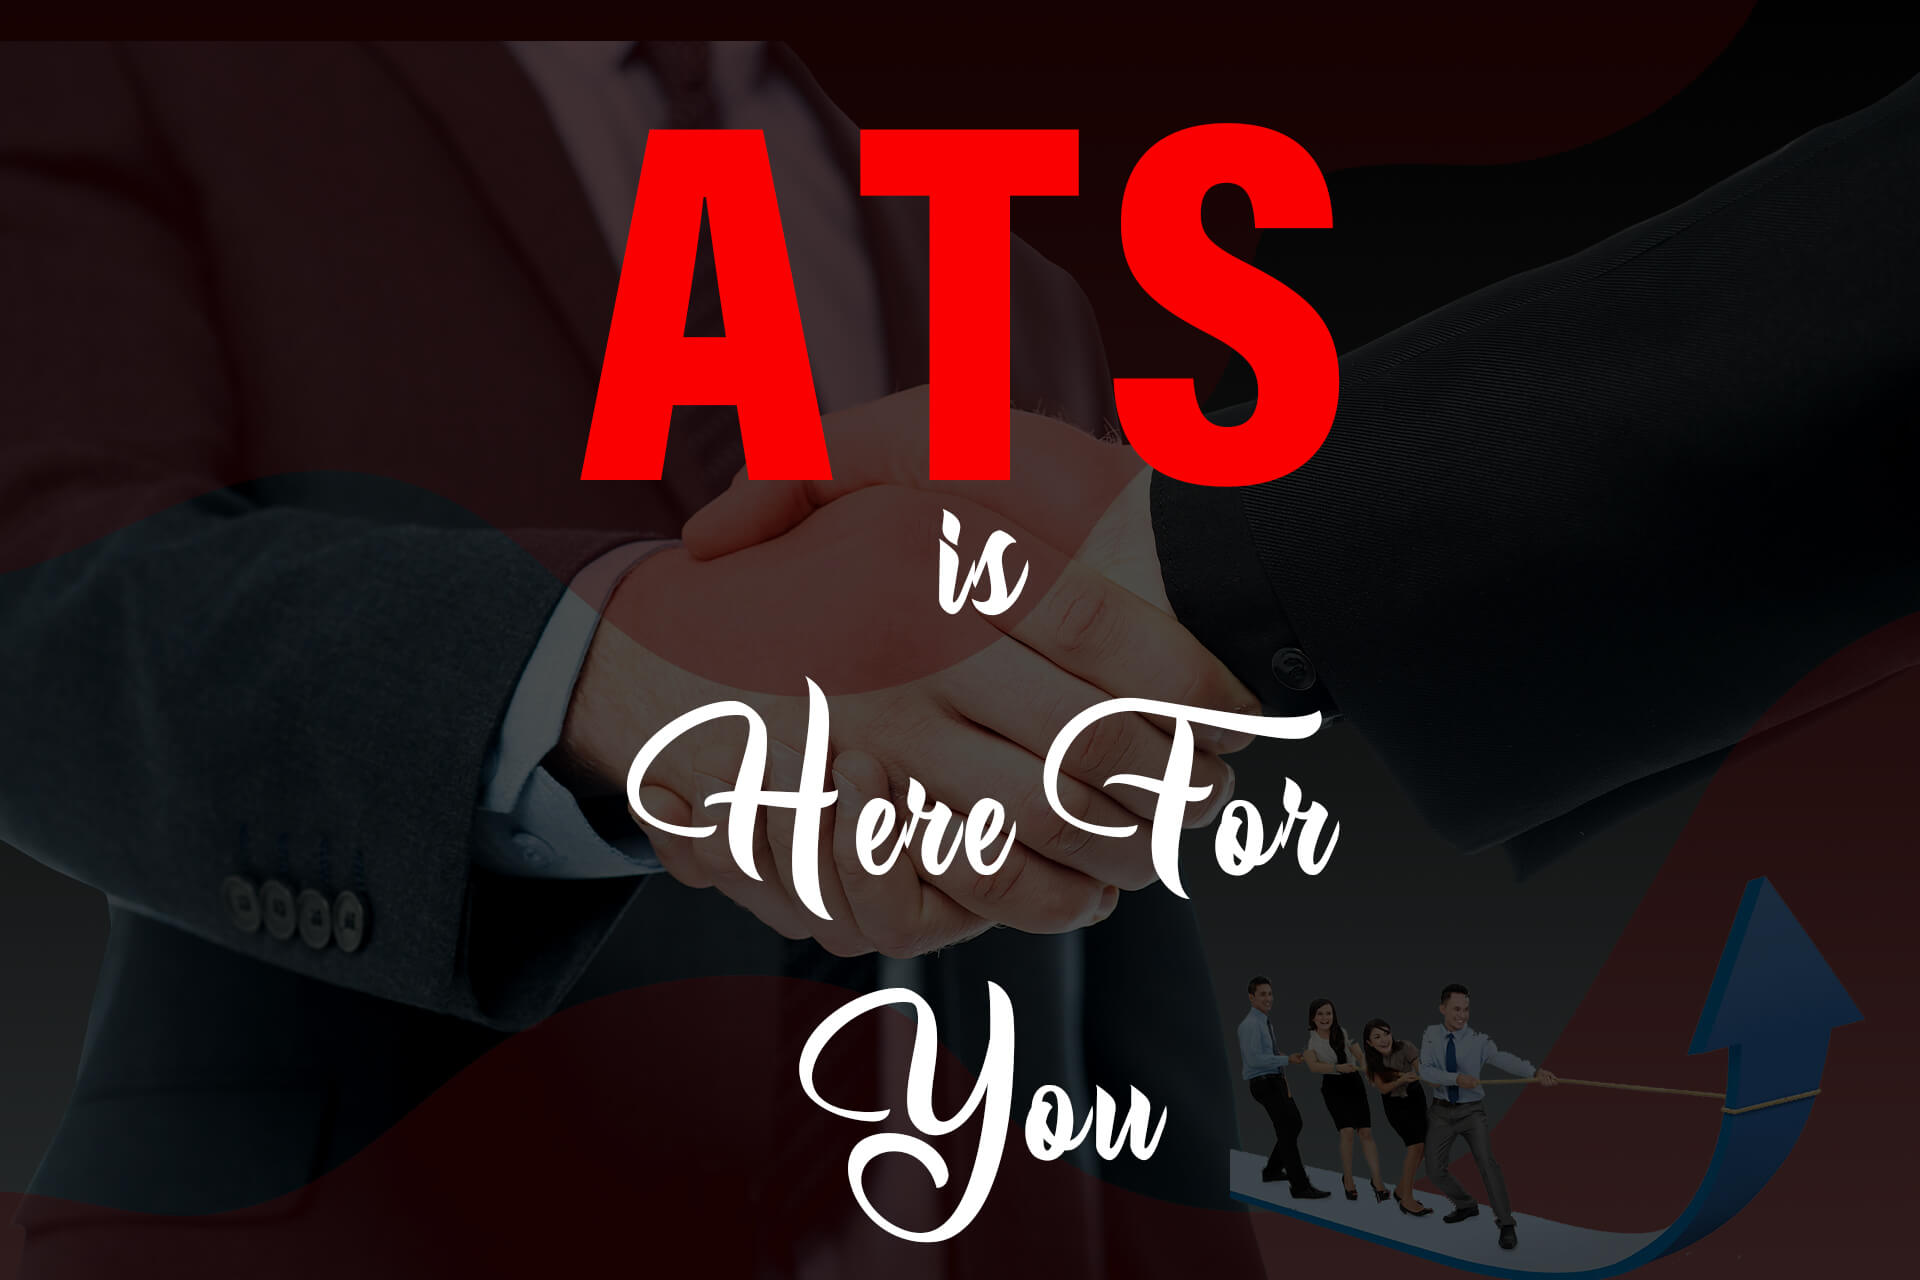 ATS is here for providing solutions to you